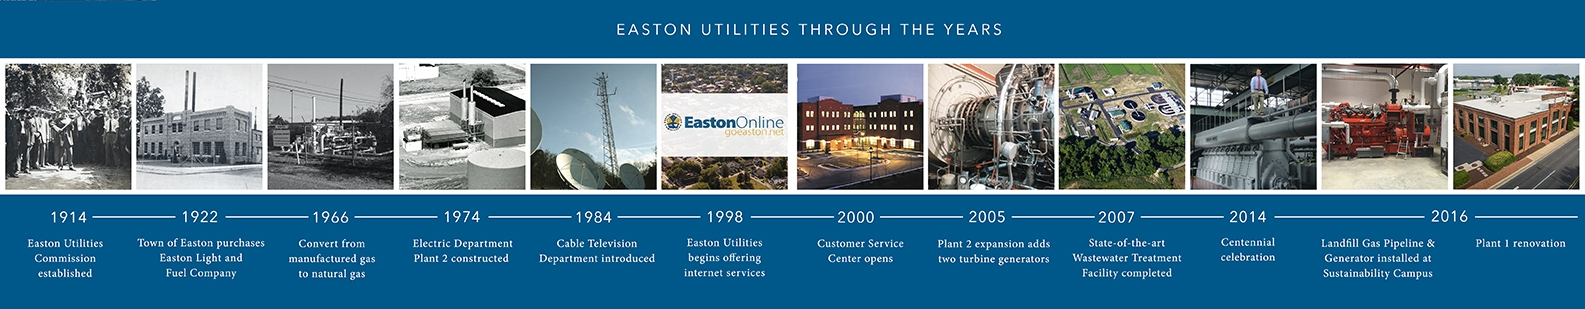 Easton Utilities Timeline